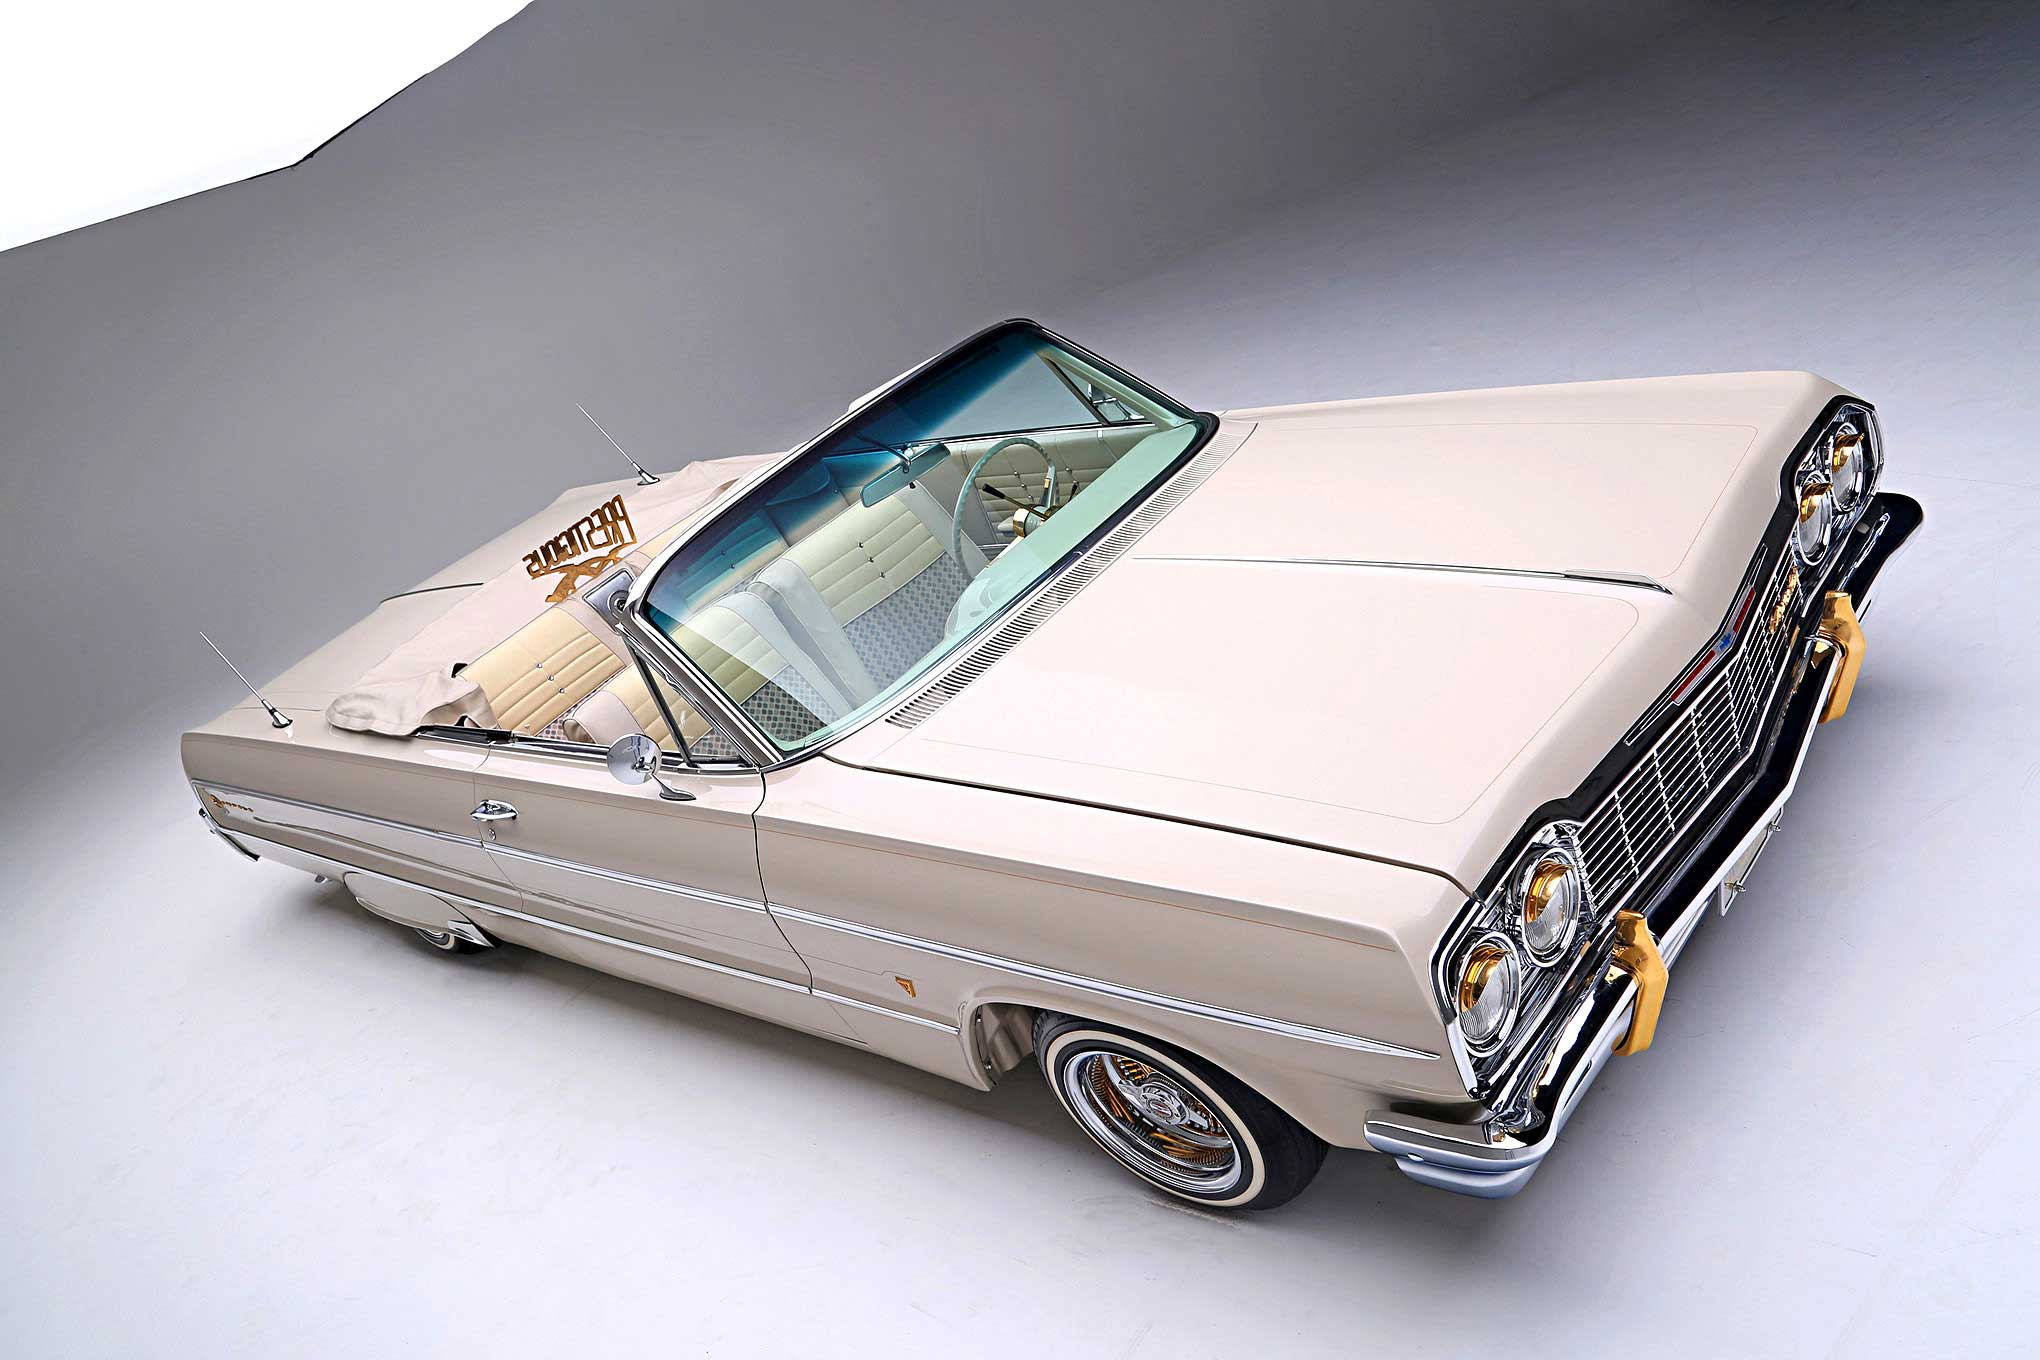 1503 1964 Chevrolet Impala Convertible further 1603 1964 Chevrolet Impala further Watch besides 1603 1964 Chevrolet Impala together with 504121752014287706. on impala on 22 inch daytons